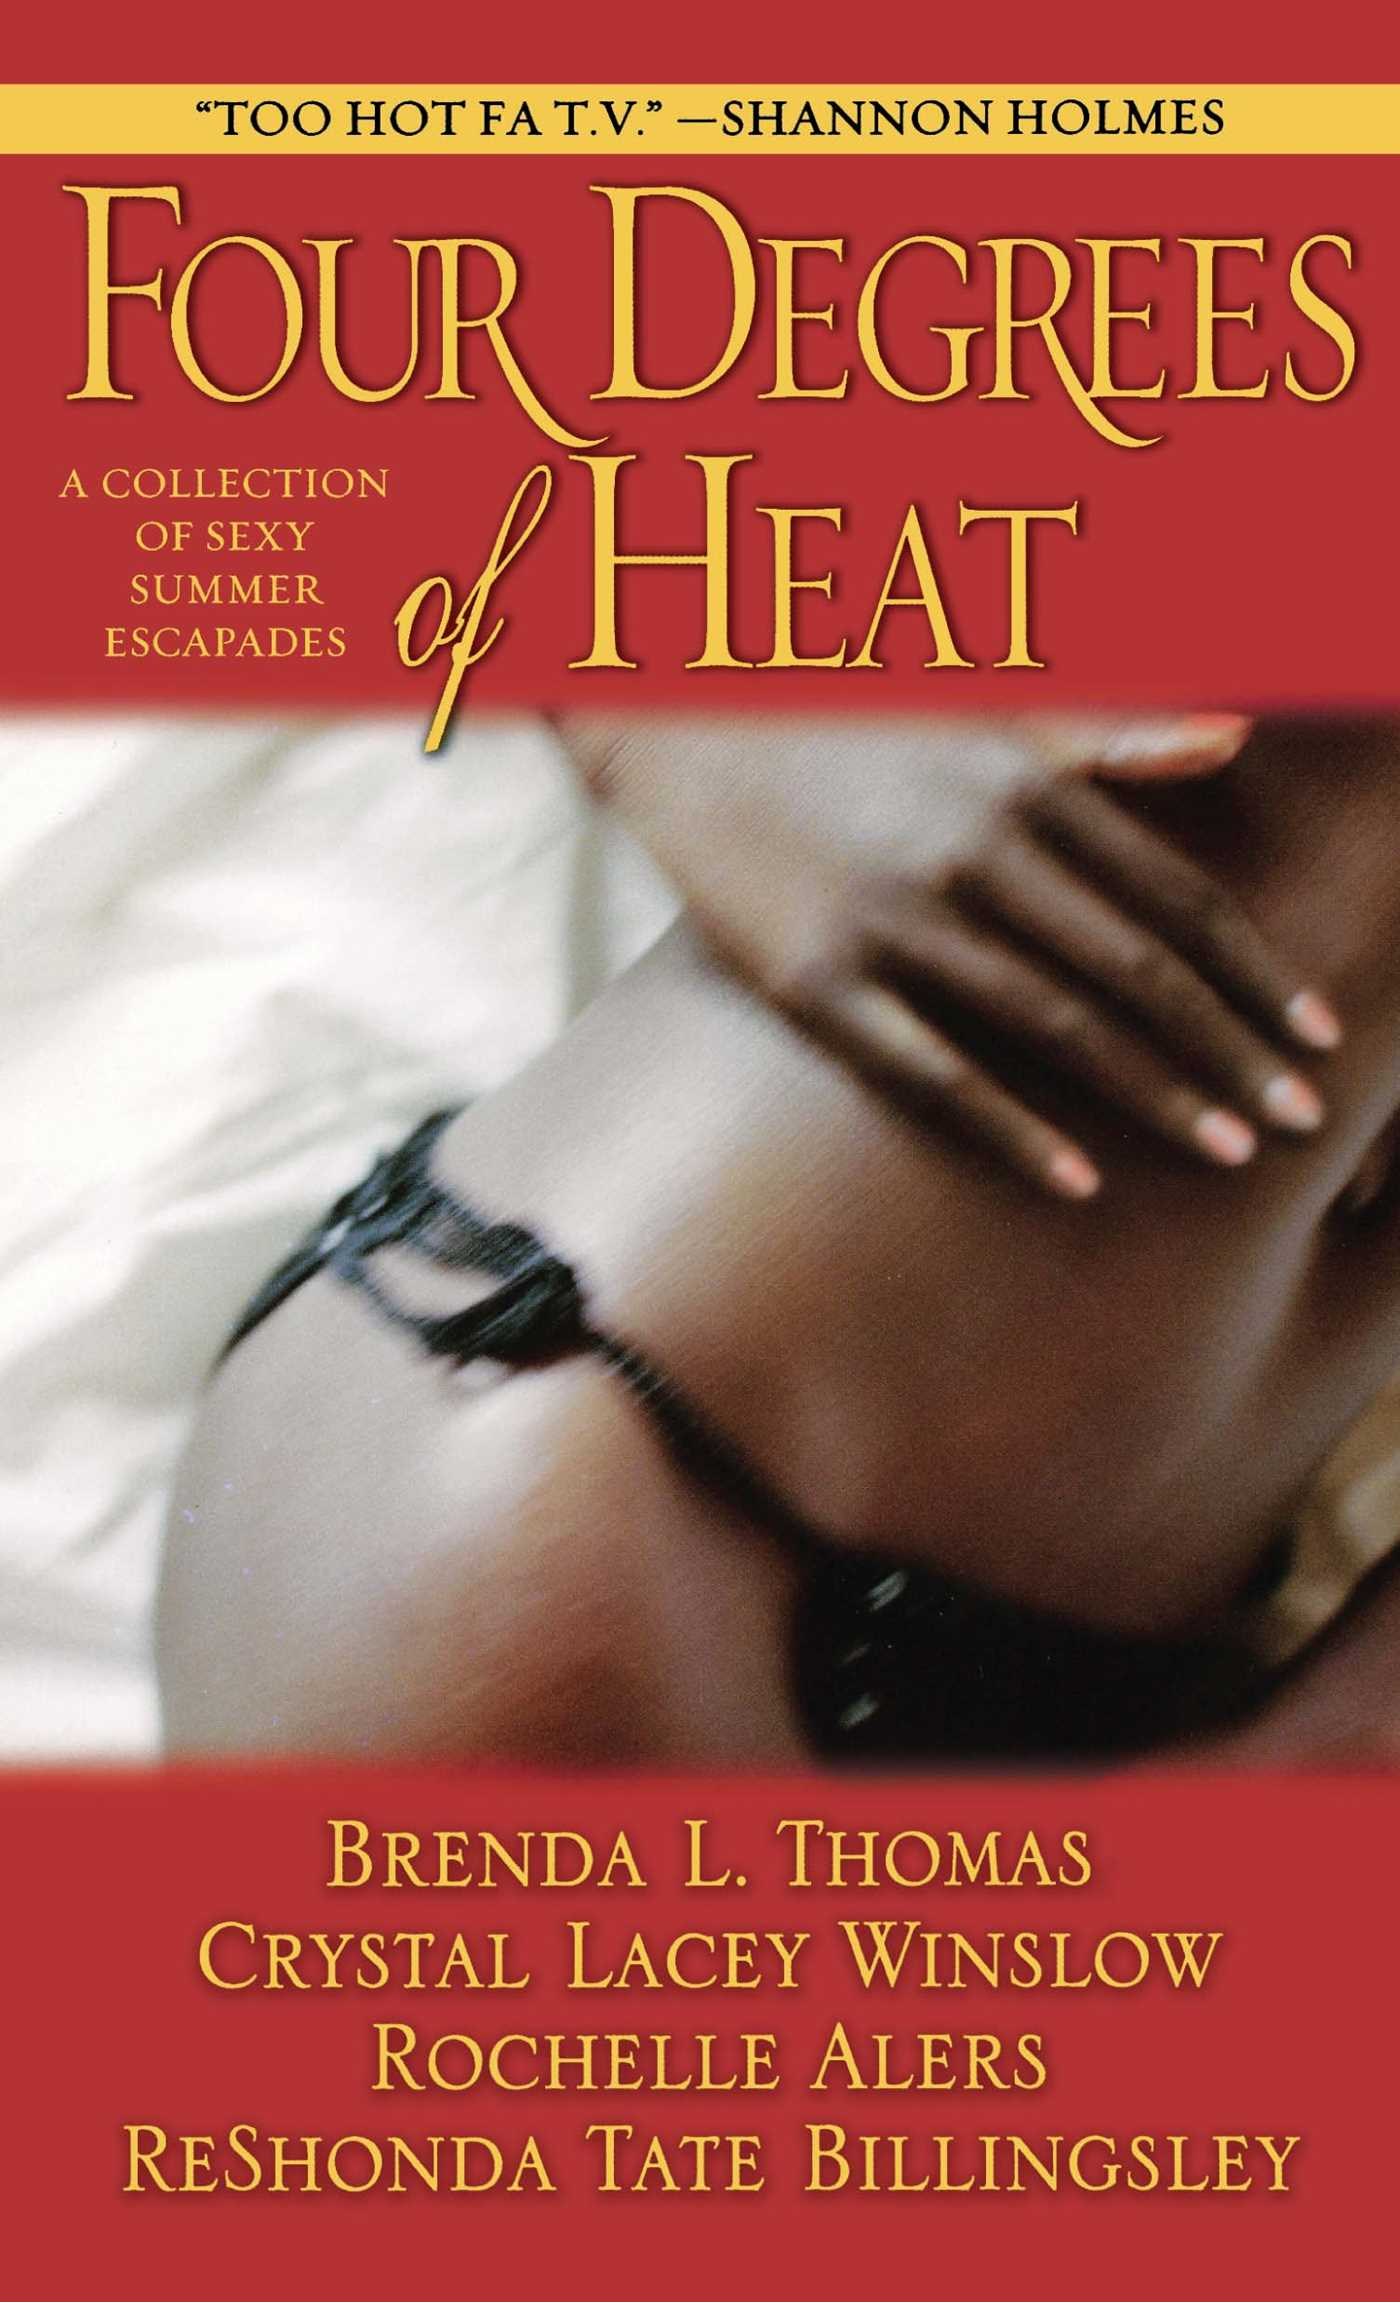 Four degrees of heat 9780743491457 hr